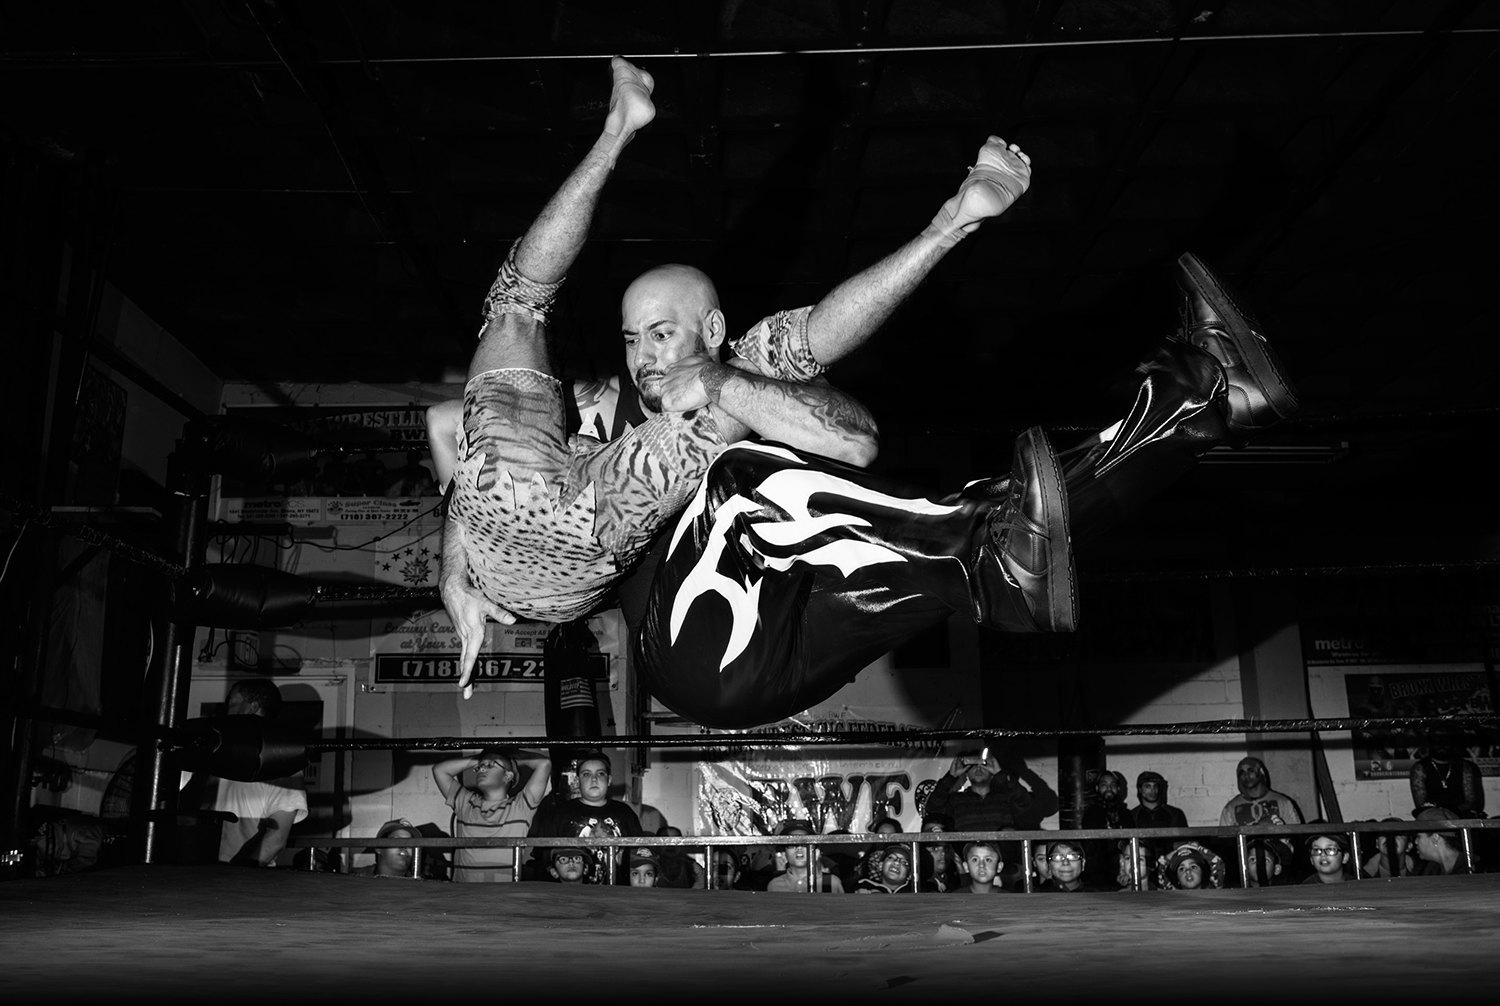 The lucha libre fighters of the Bronx. Image 1.